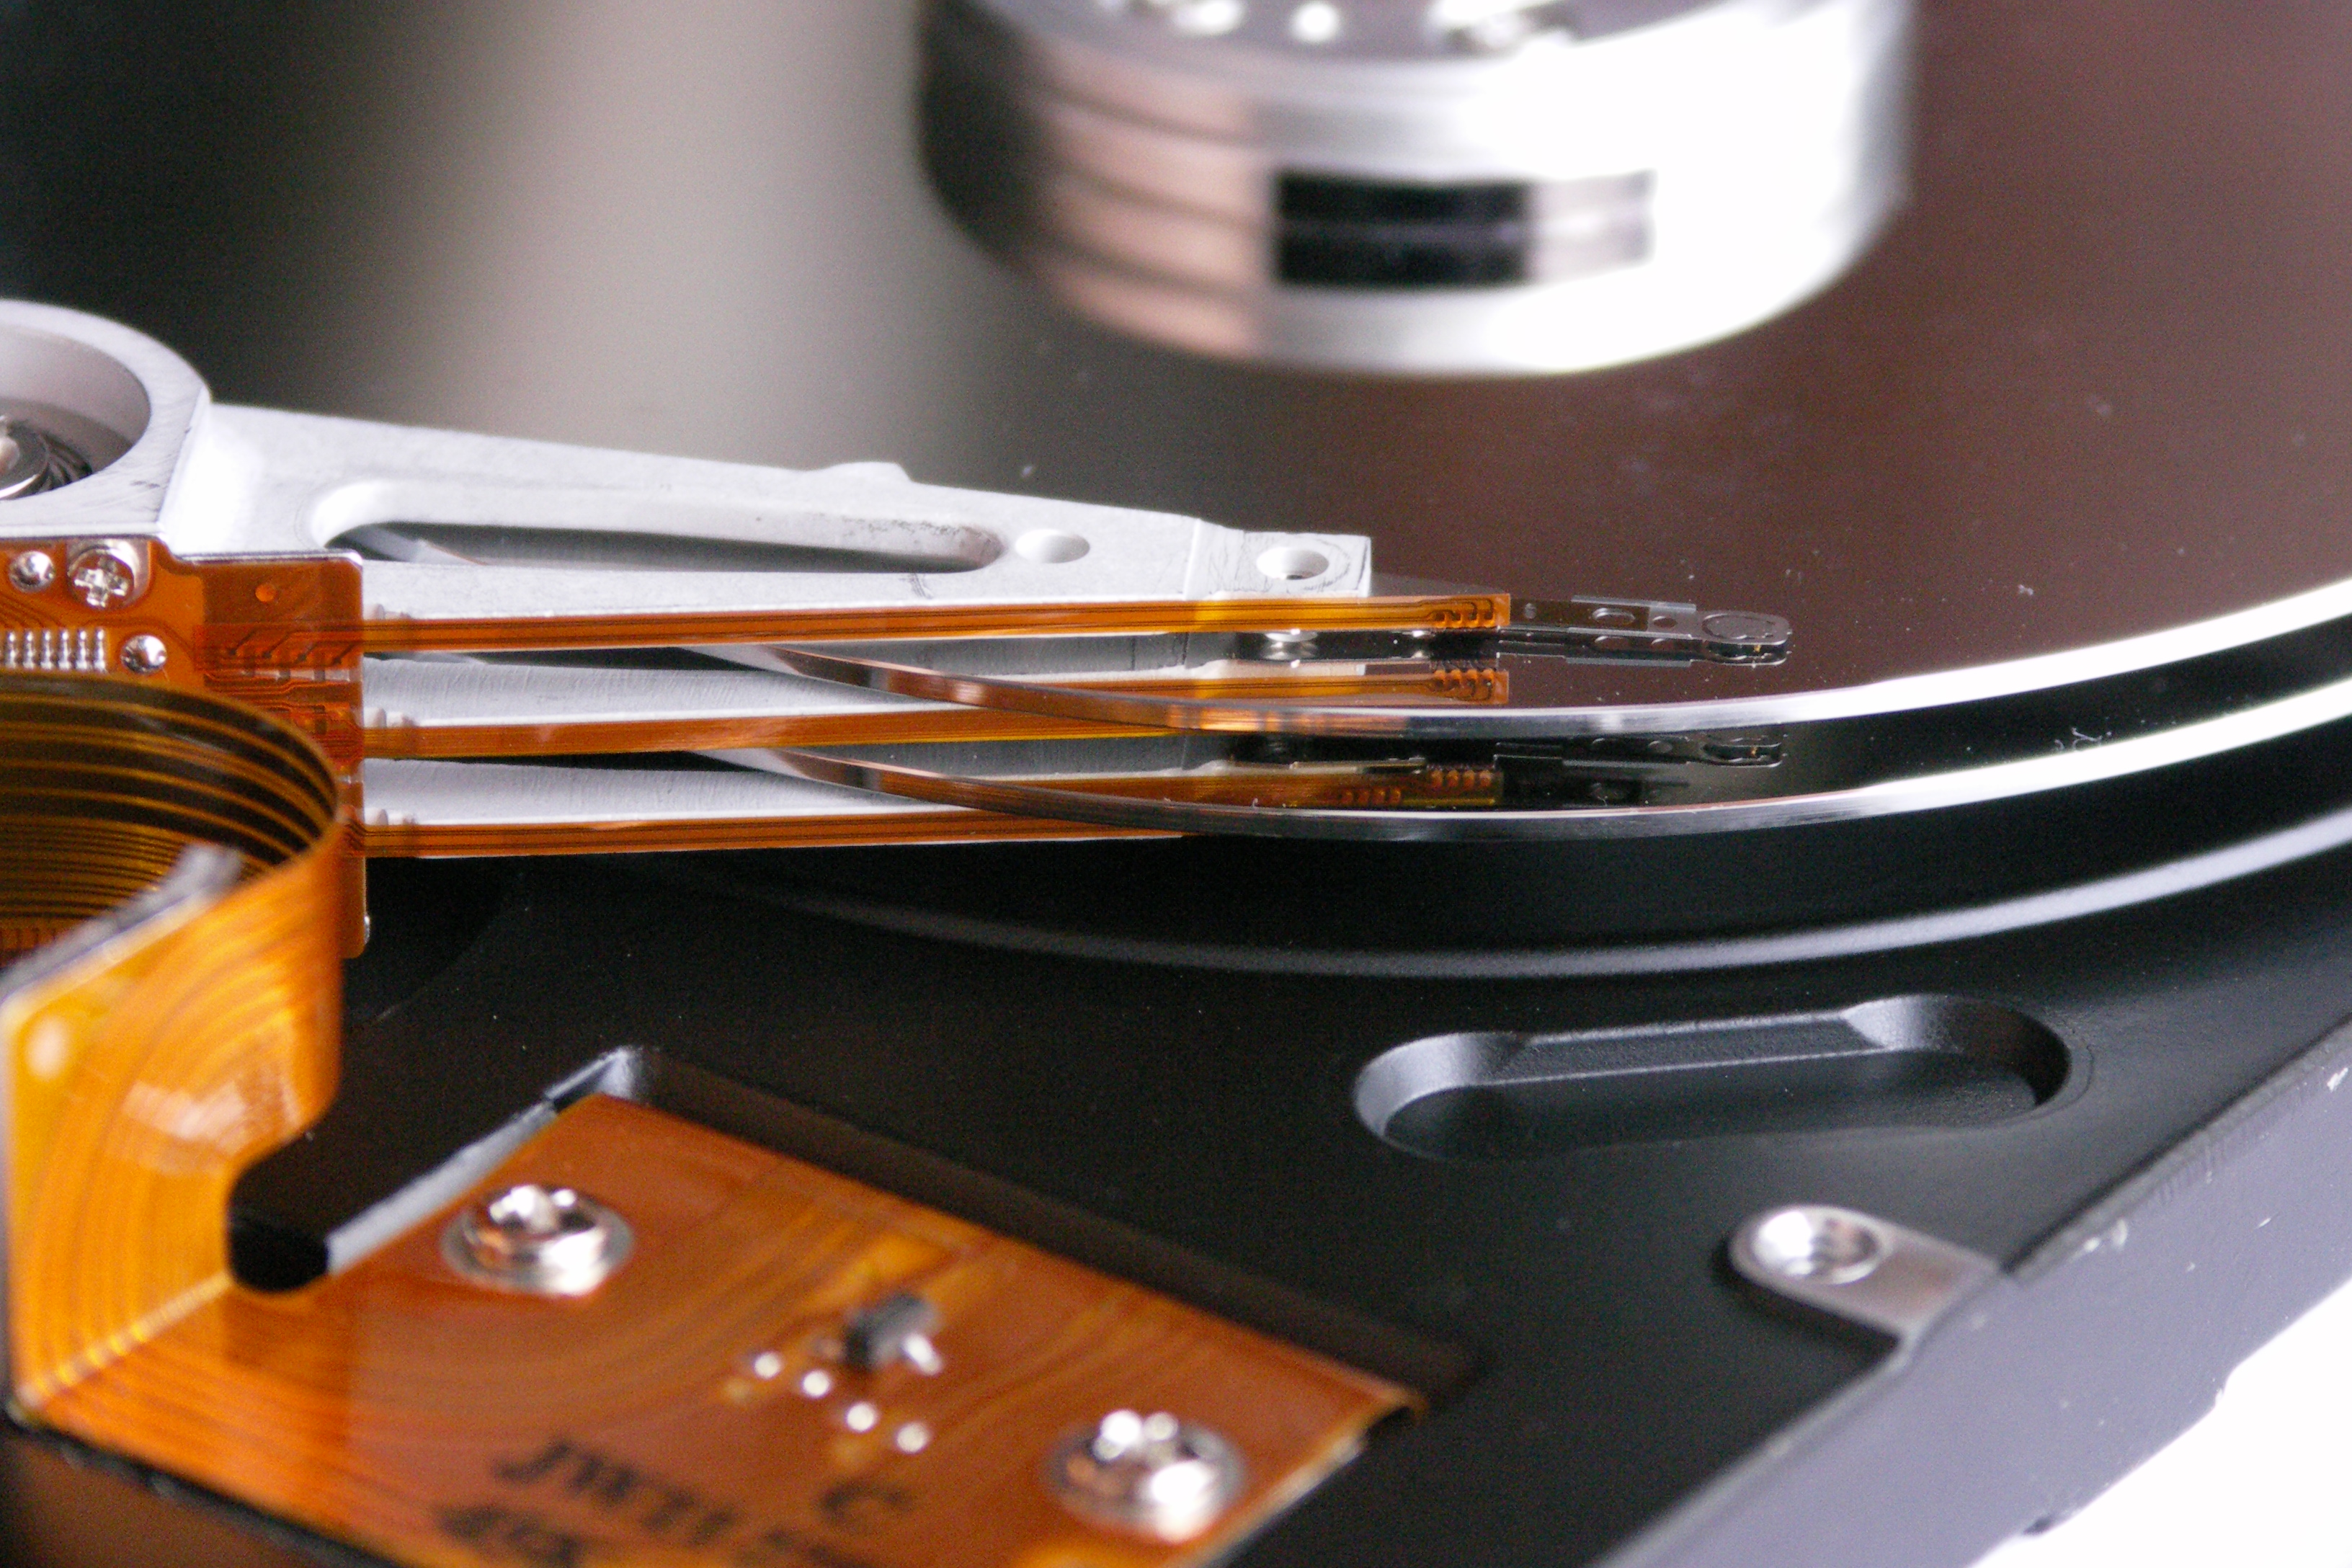 Image result for hard drive and heads images